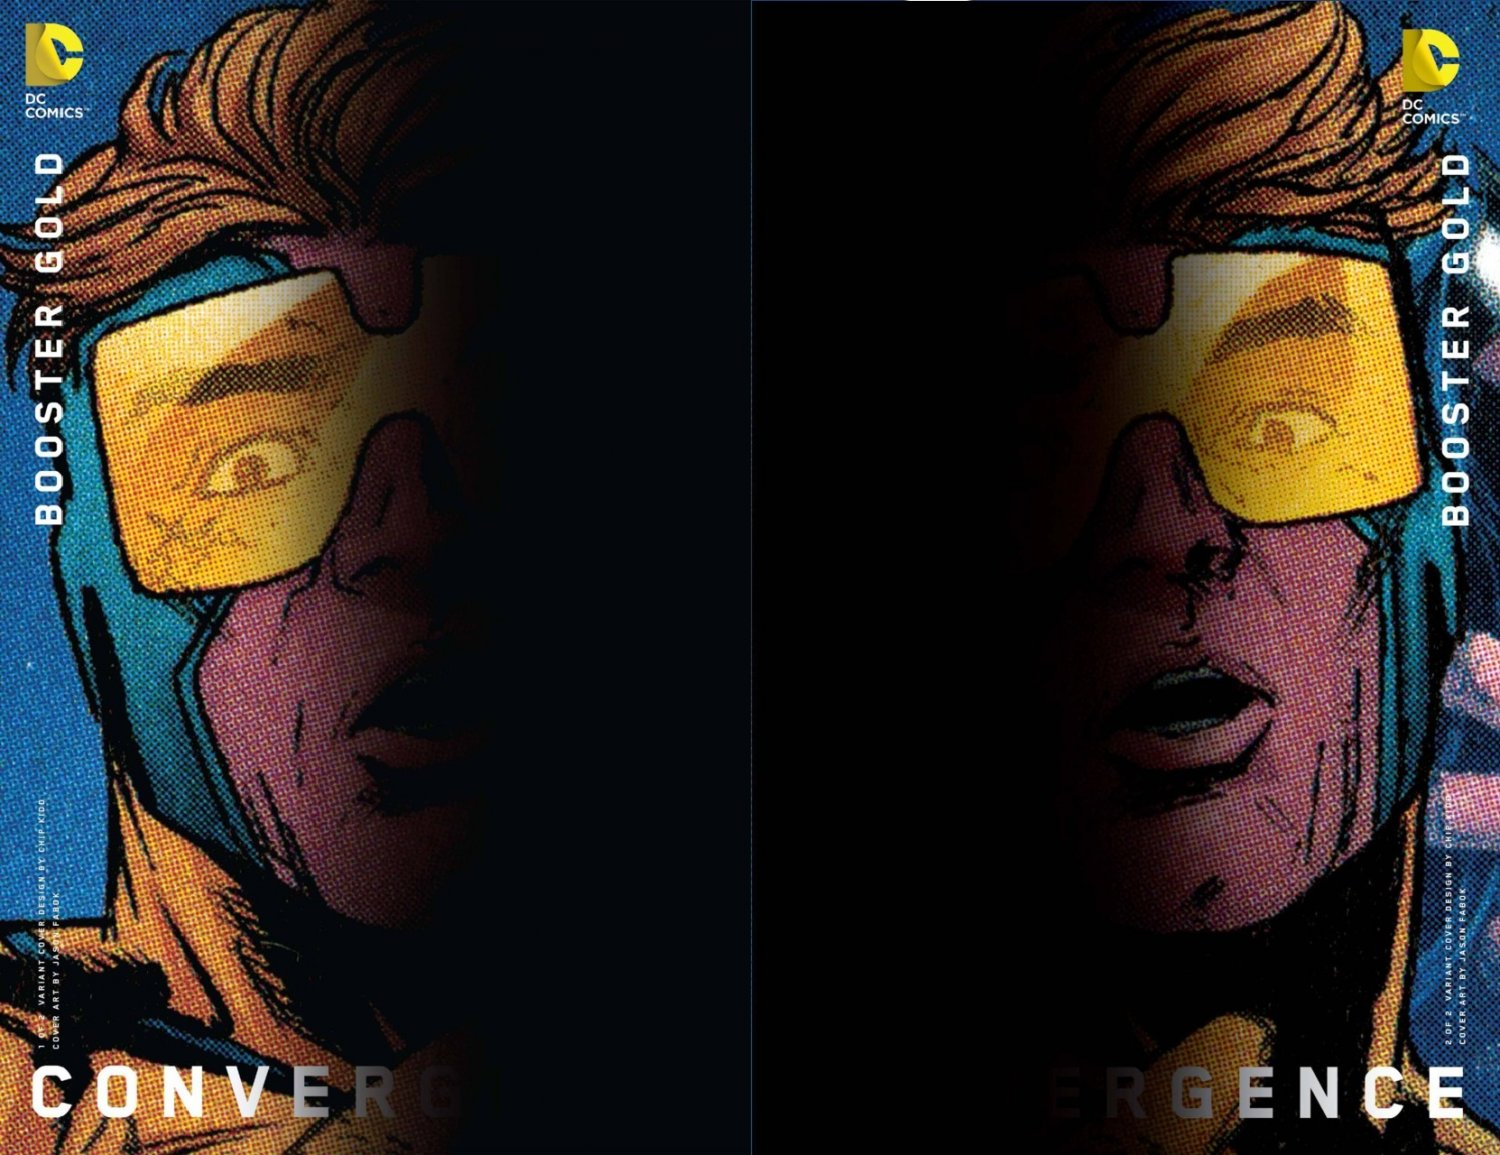 Convergence Booster Gold #1 & 2 Chip Kidd Variants [2015] VF/NM DC Comics Trade Set